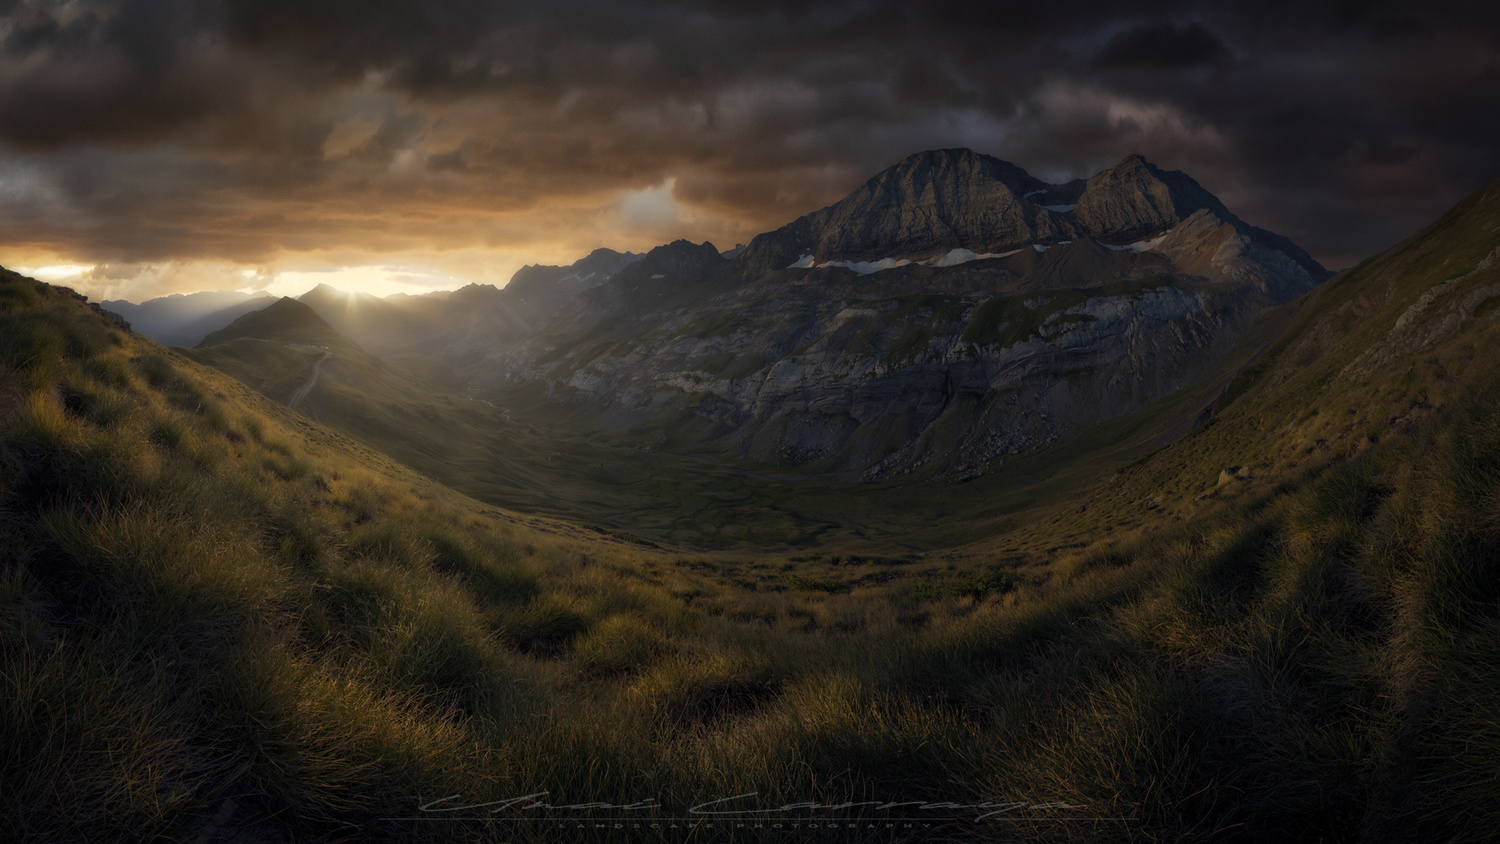 After the storm comes the calm by Unai Larraya